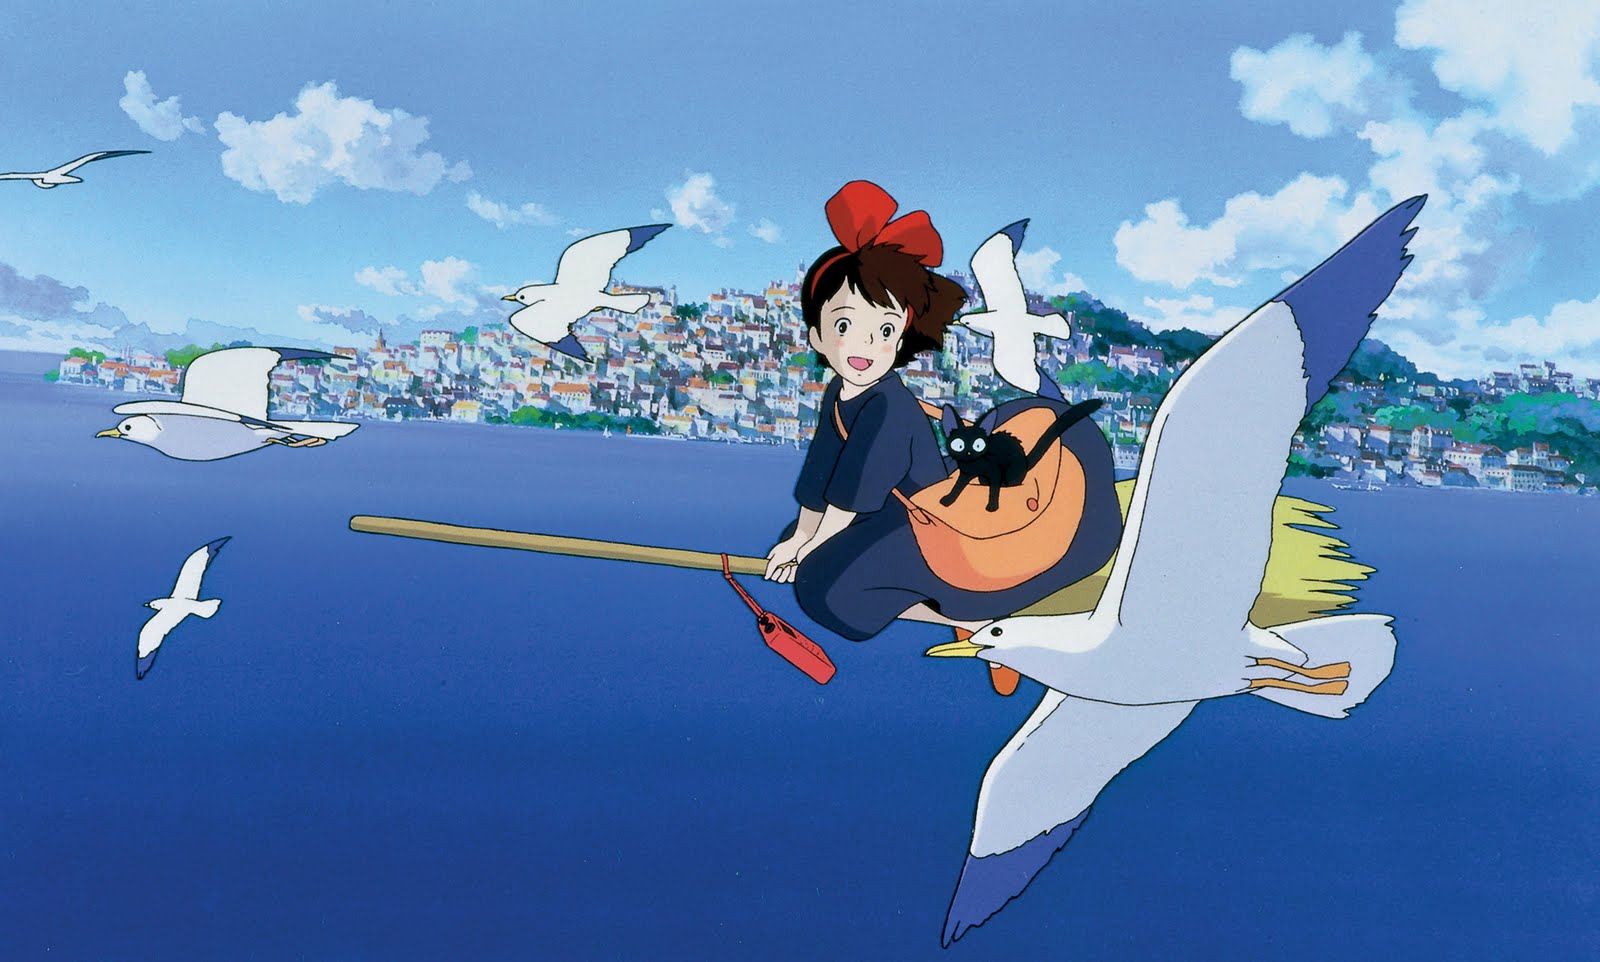 Kiki S Delivery Service Wallpapers Movie Hq Kiki S Delivery